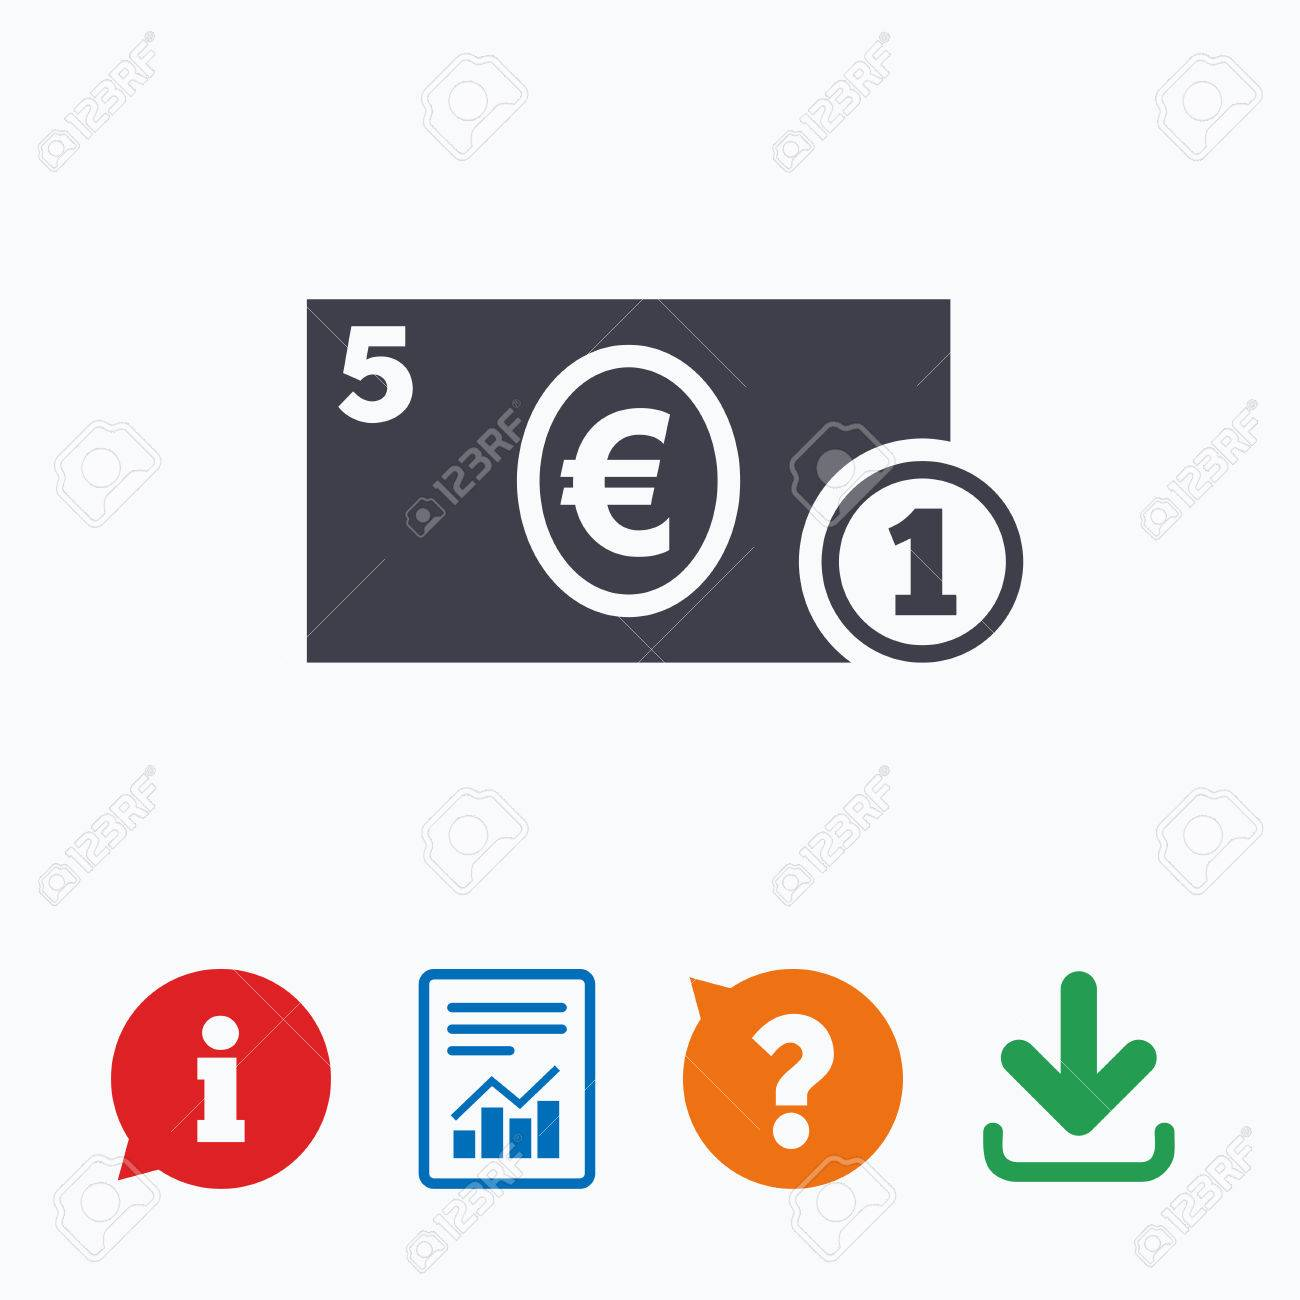 Cash sign icon euro money symbol eur coin and paper money cash sign icon euro money symbol eur coin and paper money information think buycottarizona Gallery